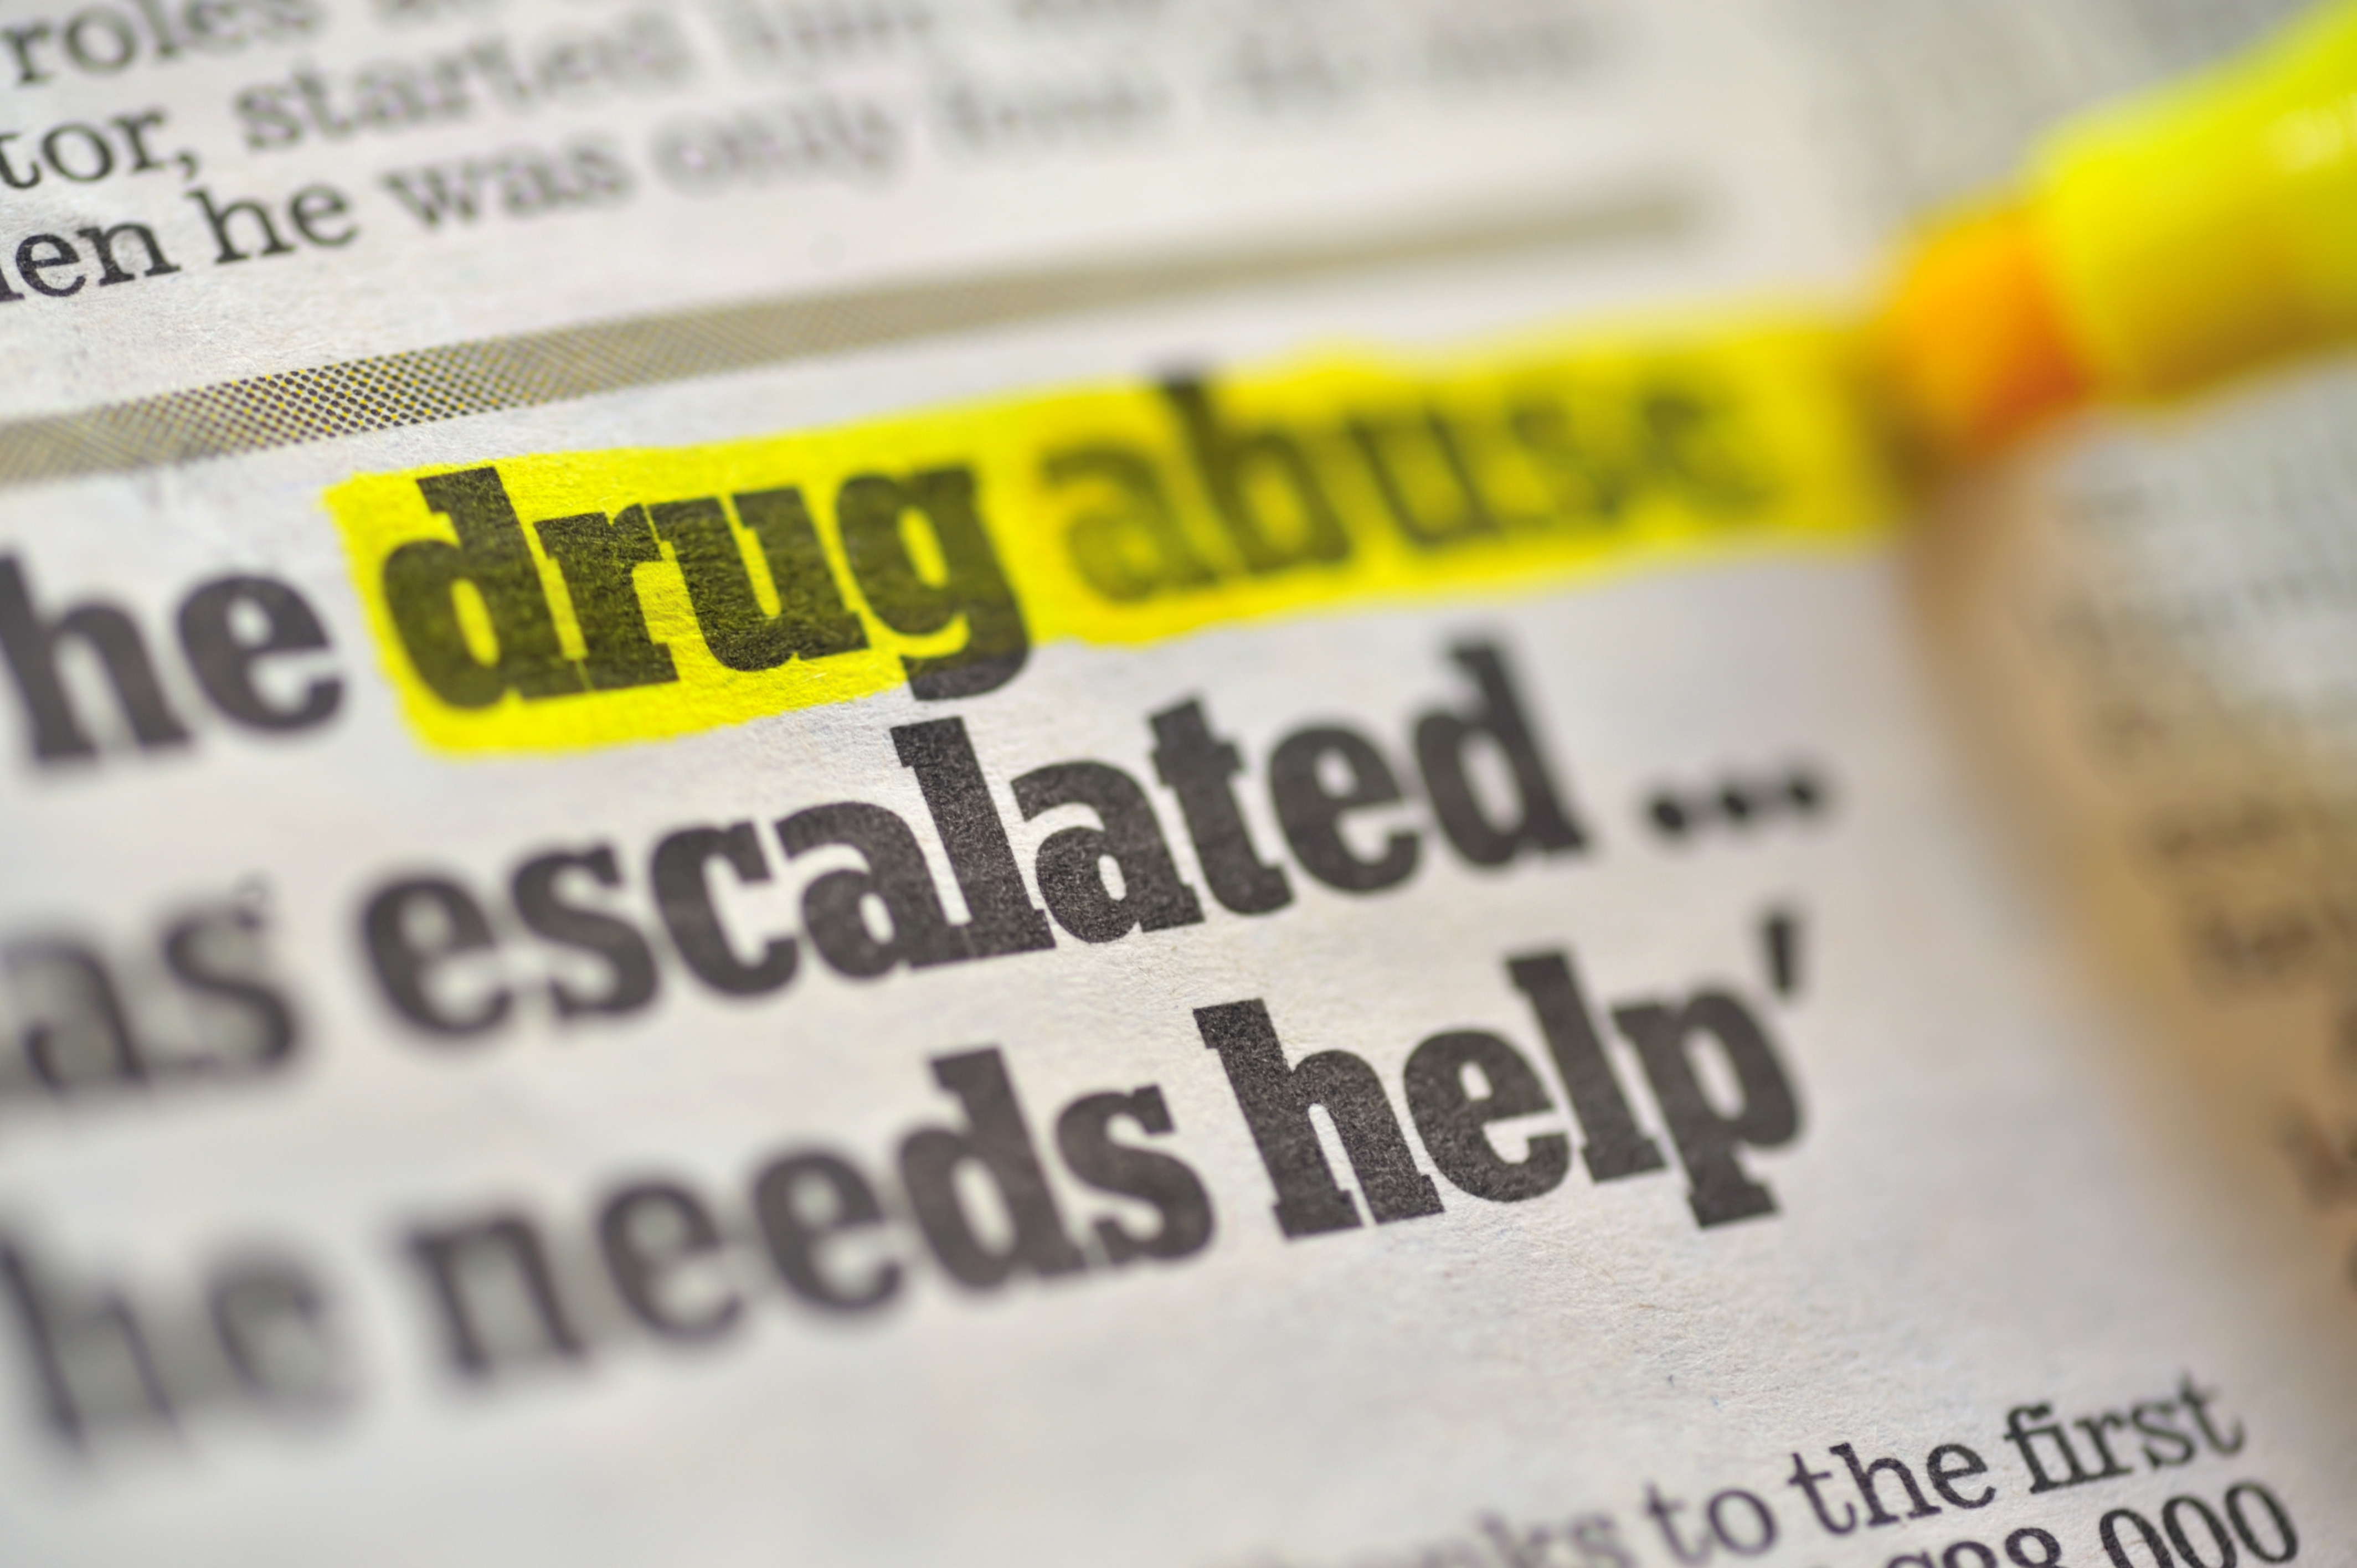 Opioid drugs can be highly addictive.